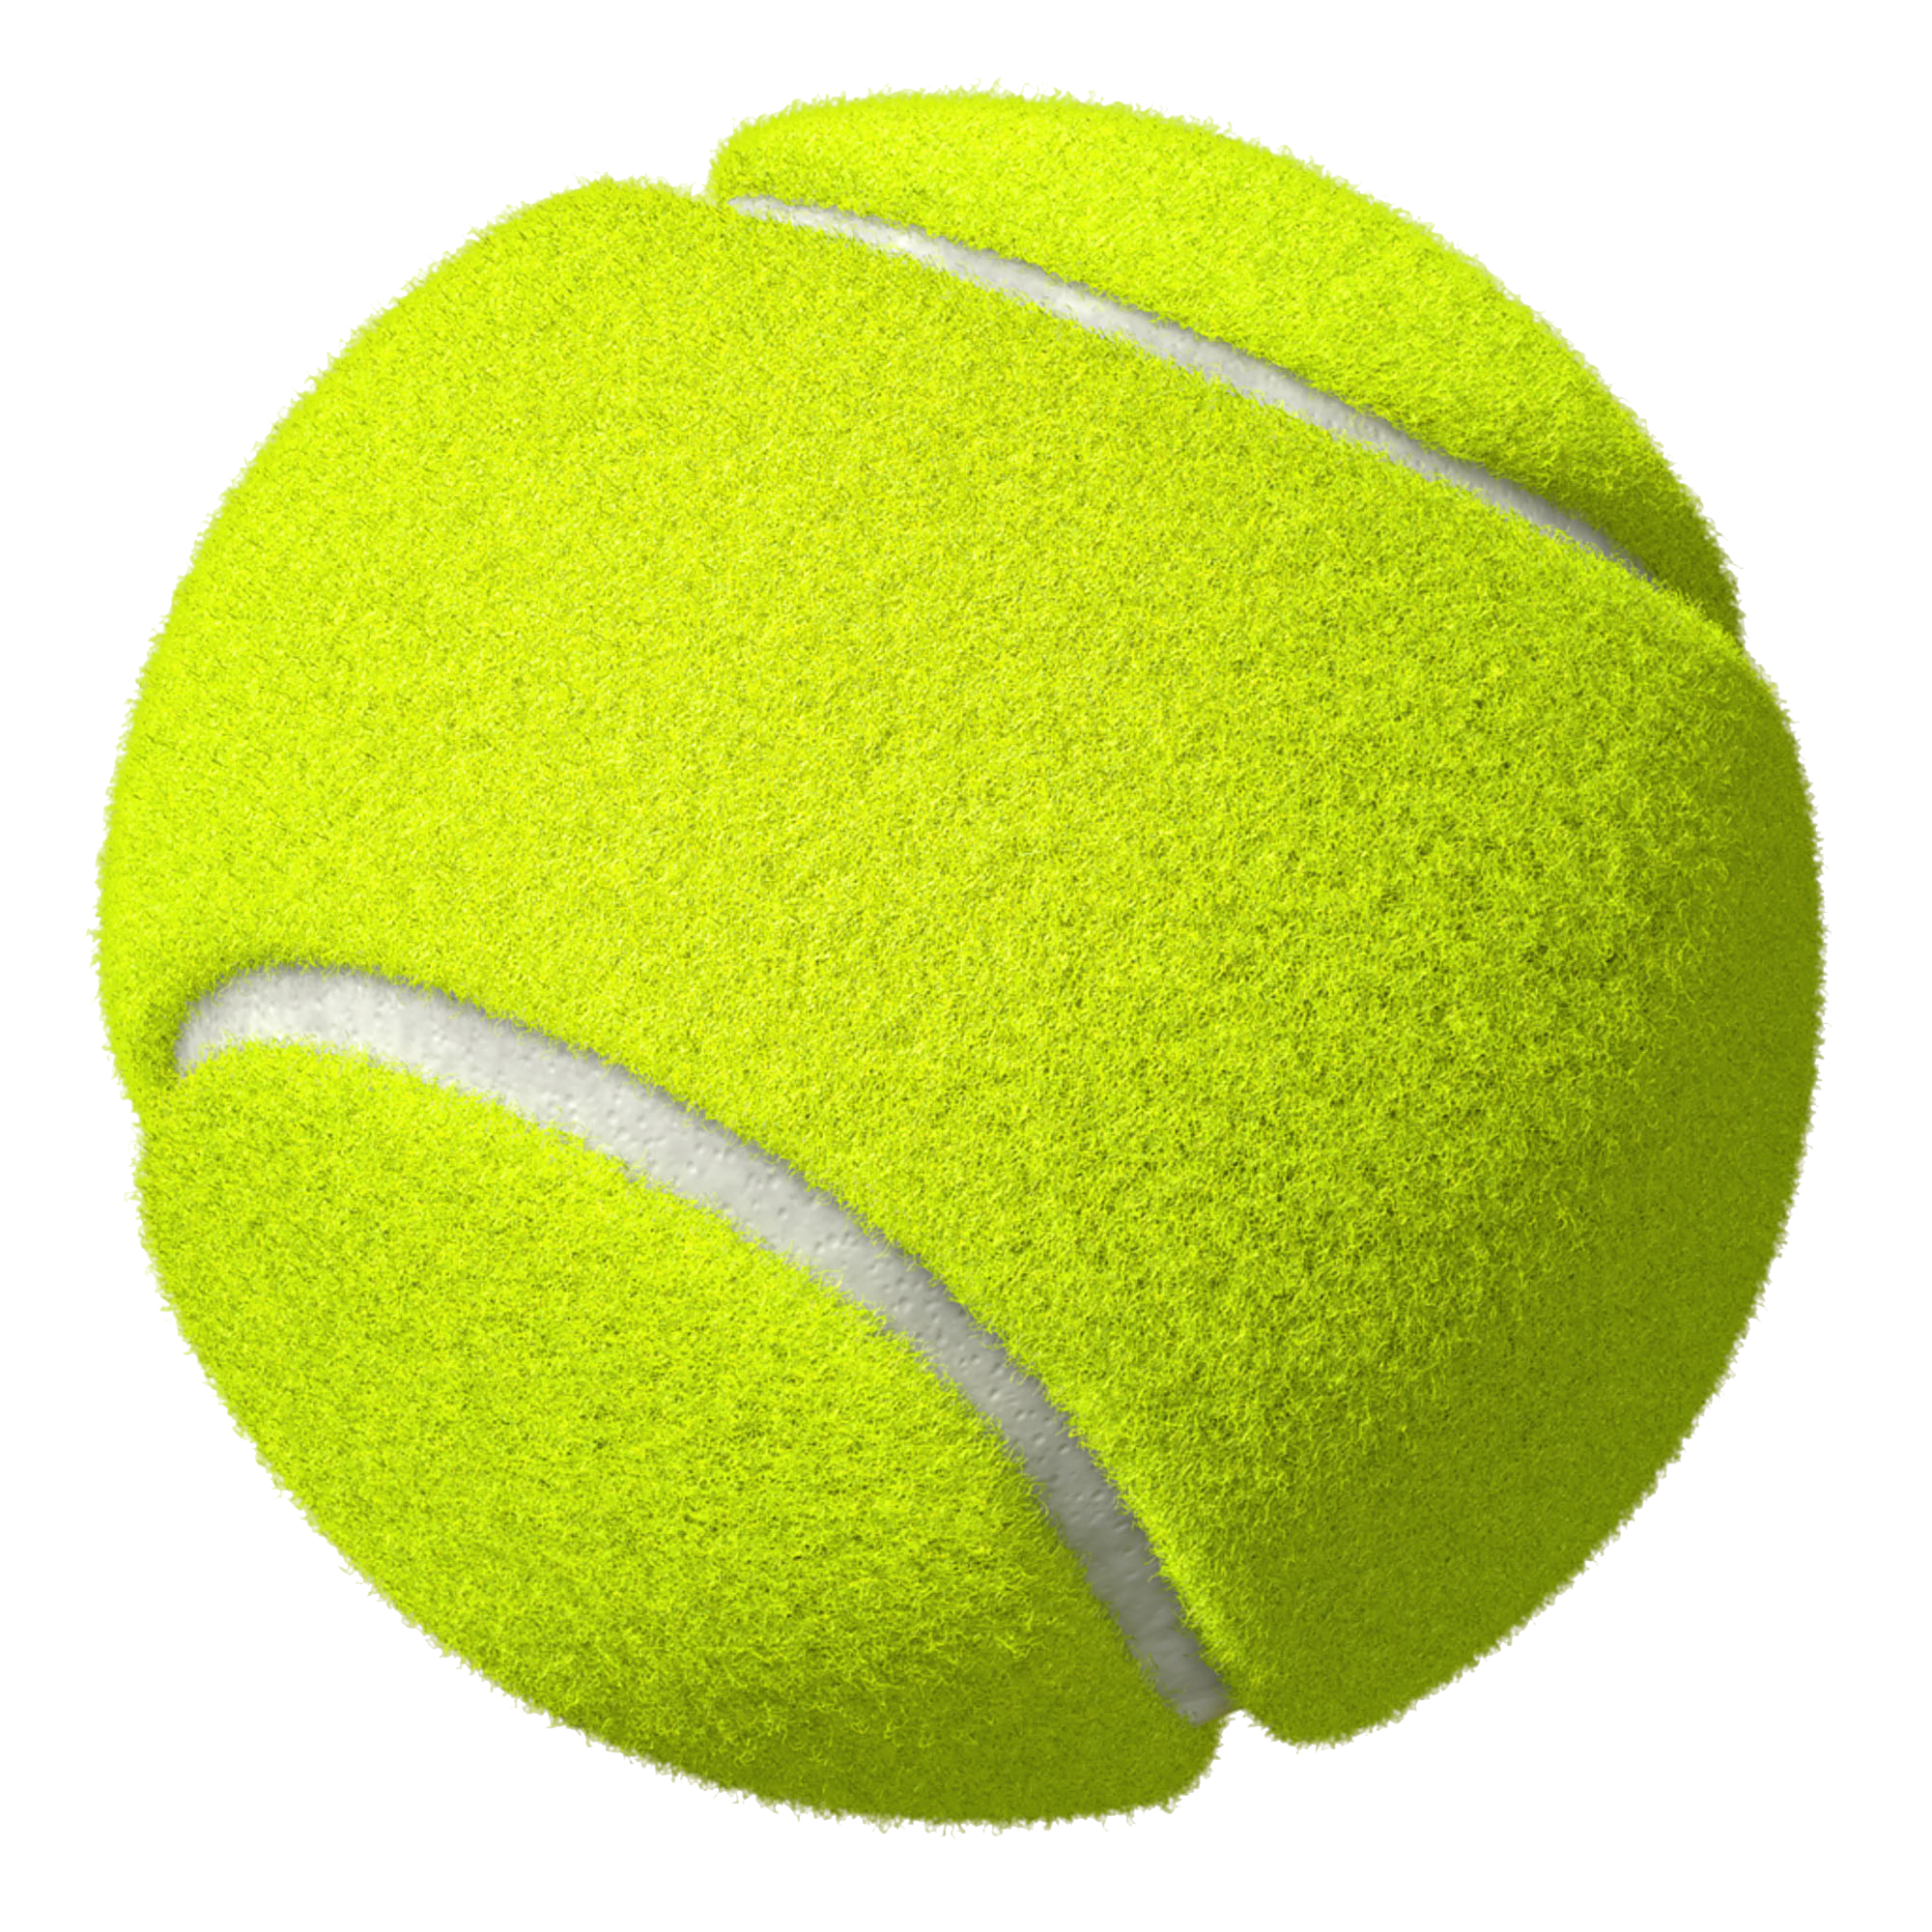 Mto clipart picture stock Tennis ball clipart no background - Clip Art Library picture stock